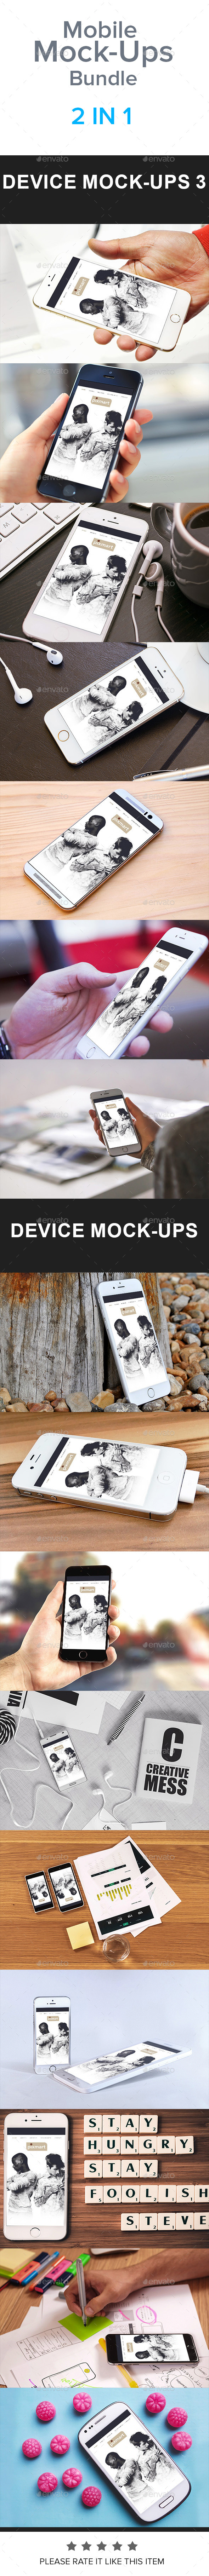 Mobile Mock-Ups Bundle - Mobile Displays